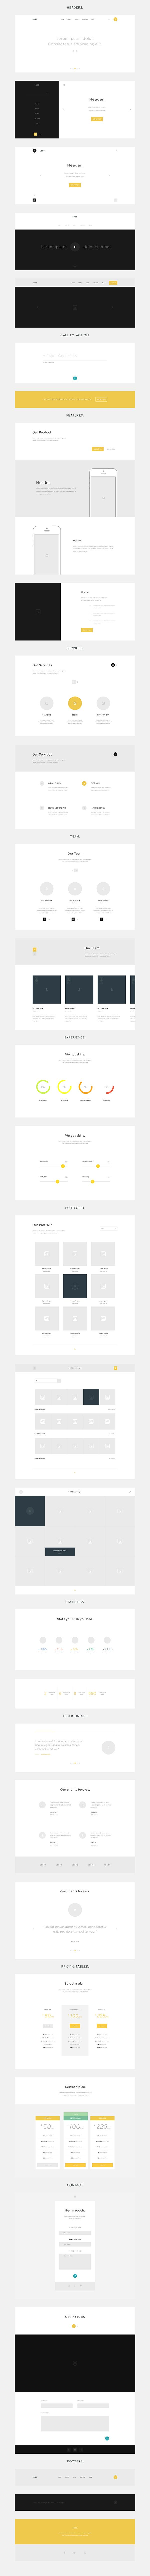 One Page Website Wireframes #2 | GraphicBurger